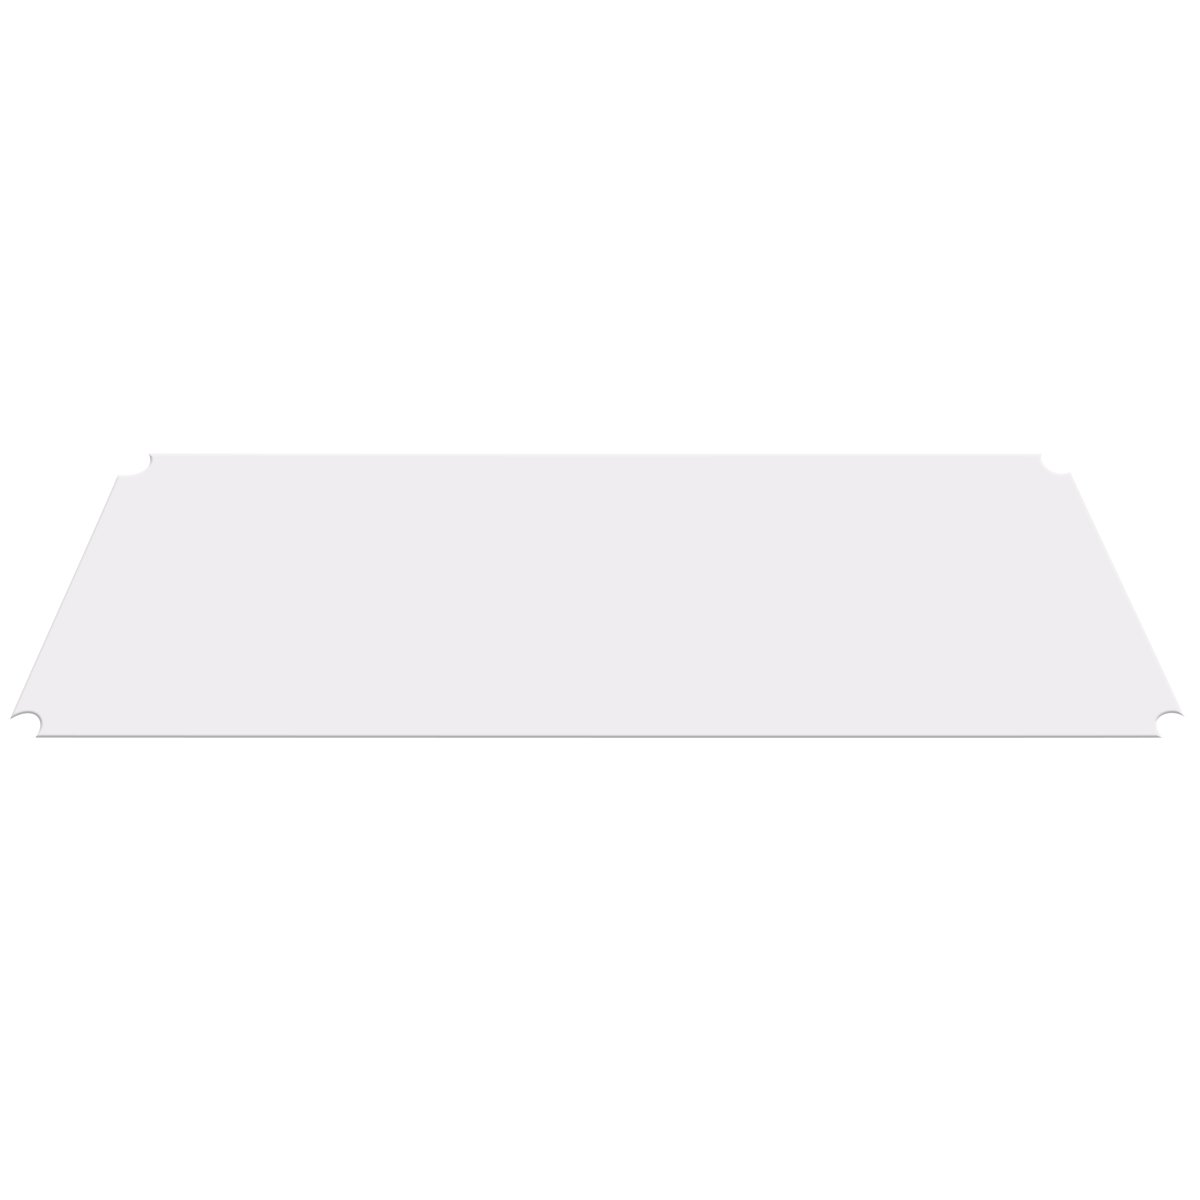 AKRO-MILS  AW2472LINER - Clear Shelf Liner for 24-inch X 72-inch Chrome Wire Shelf - Pack of 4